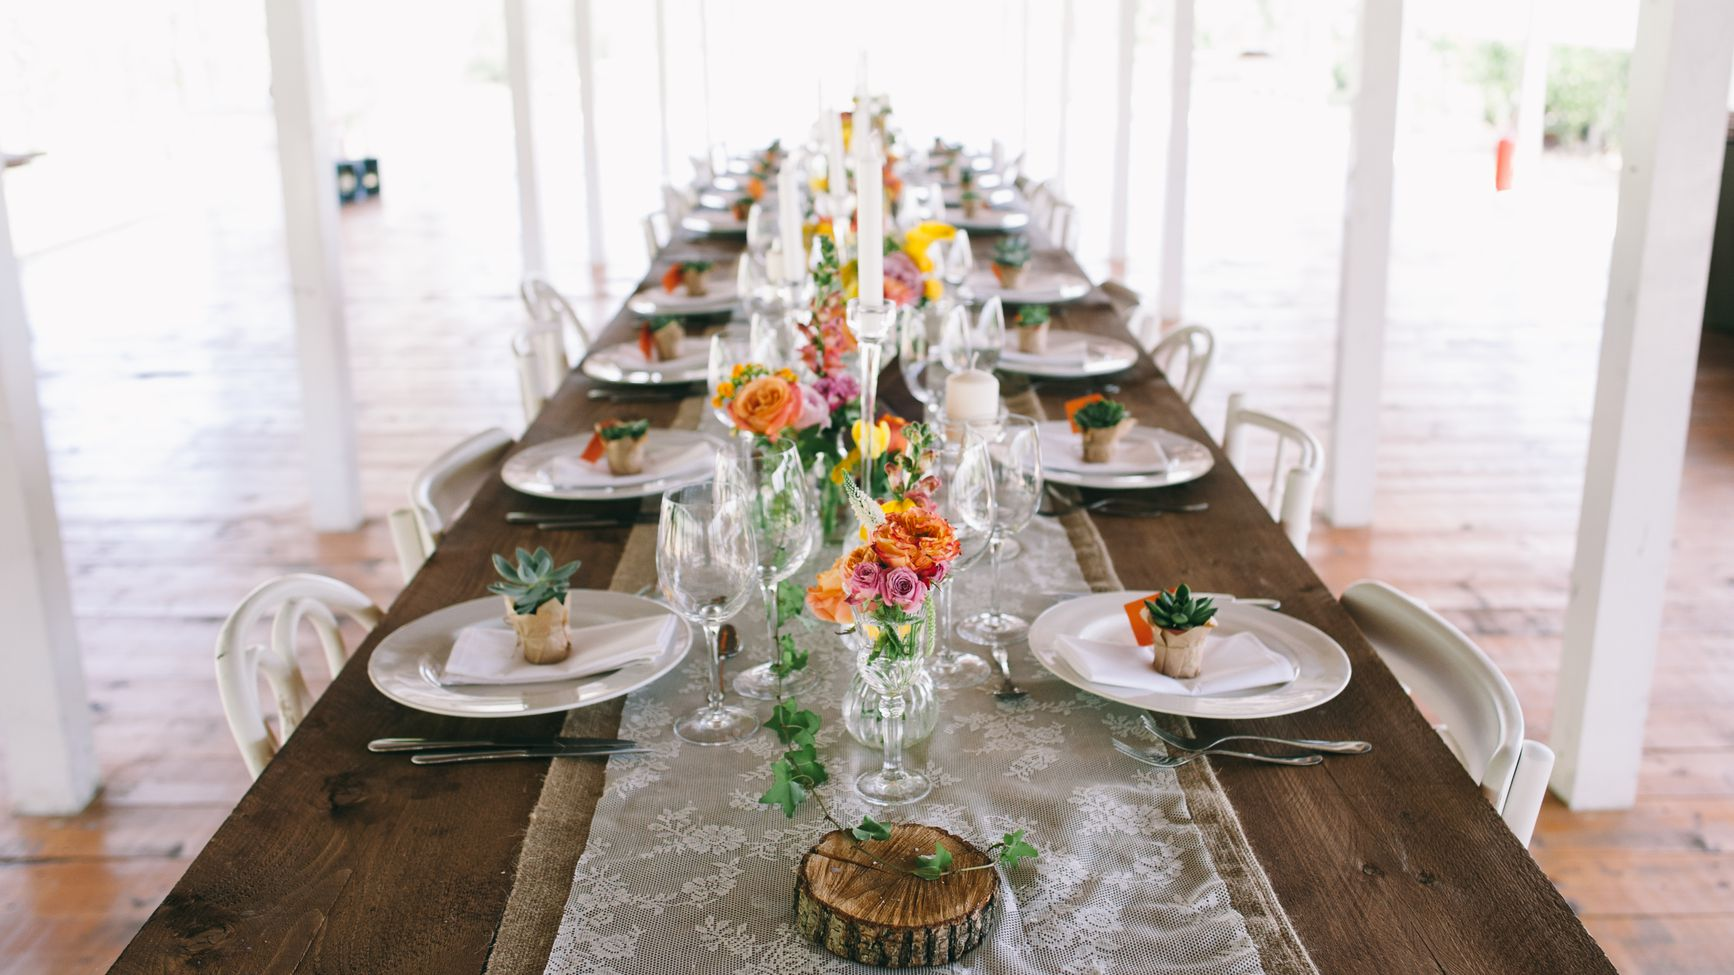 decorating ideas delectable image of wedding table.htm wedding themes and style inspiration  wedding themes and style inspiration